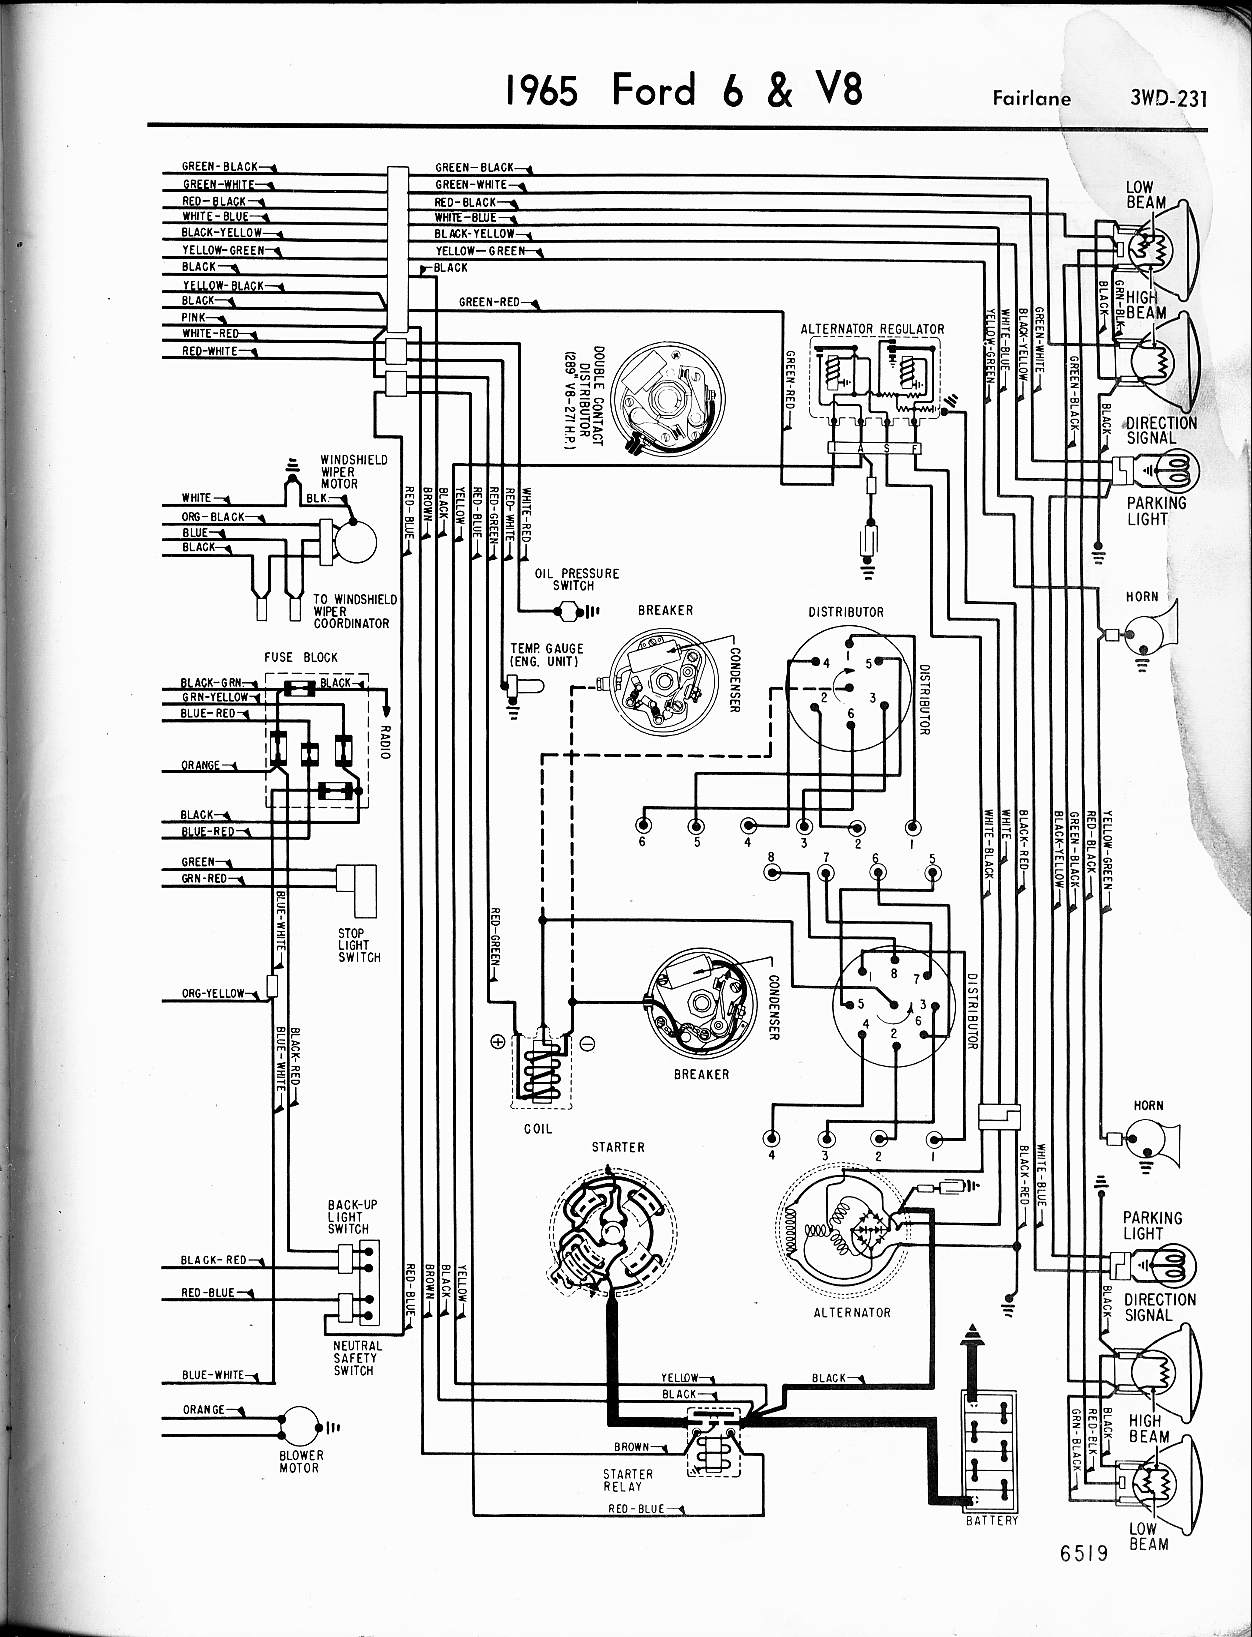 MWire5765 231 57 65 ford wiring diagrams 1968 ford galaxie 500 wiring diagram at fashall.co